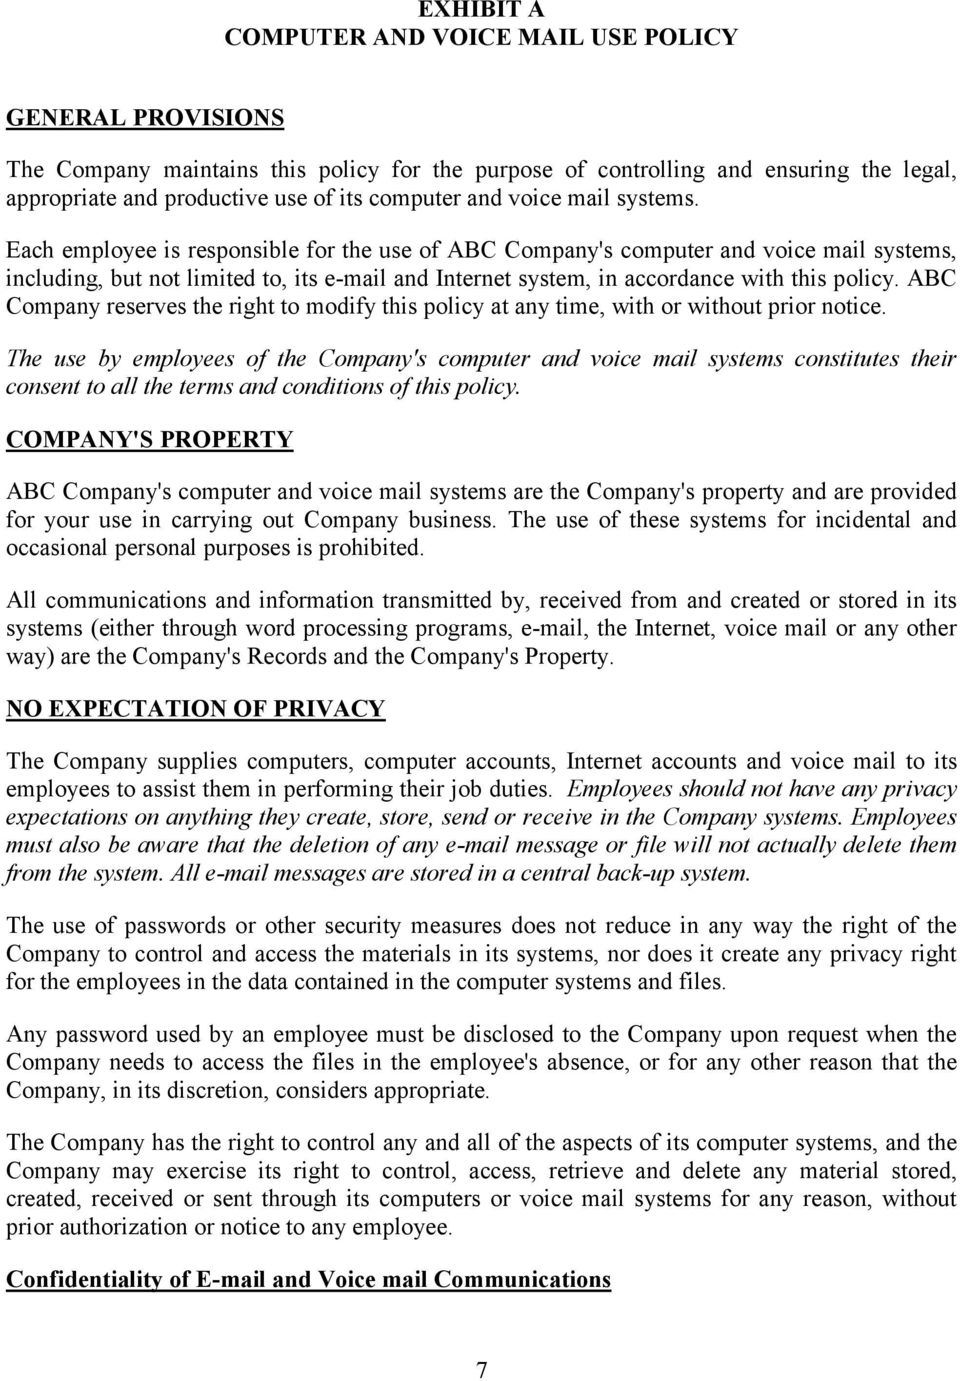 Each employee is responsible for the use of ABC Company's computer and voice mail systems, including, but not limited to, its e-mail and Internet system, in accordance with this policy.